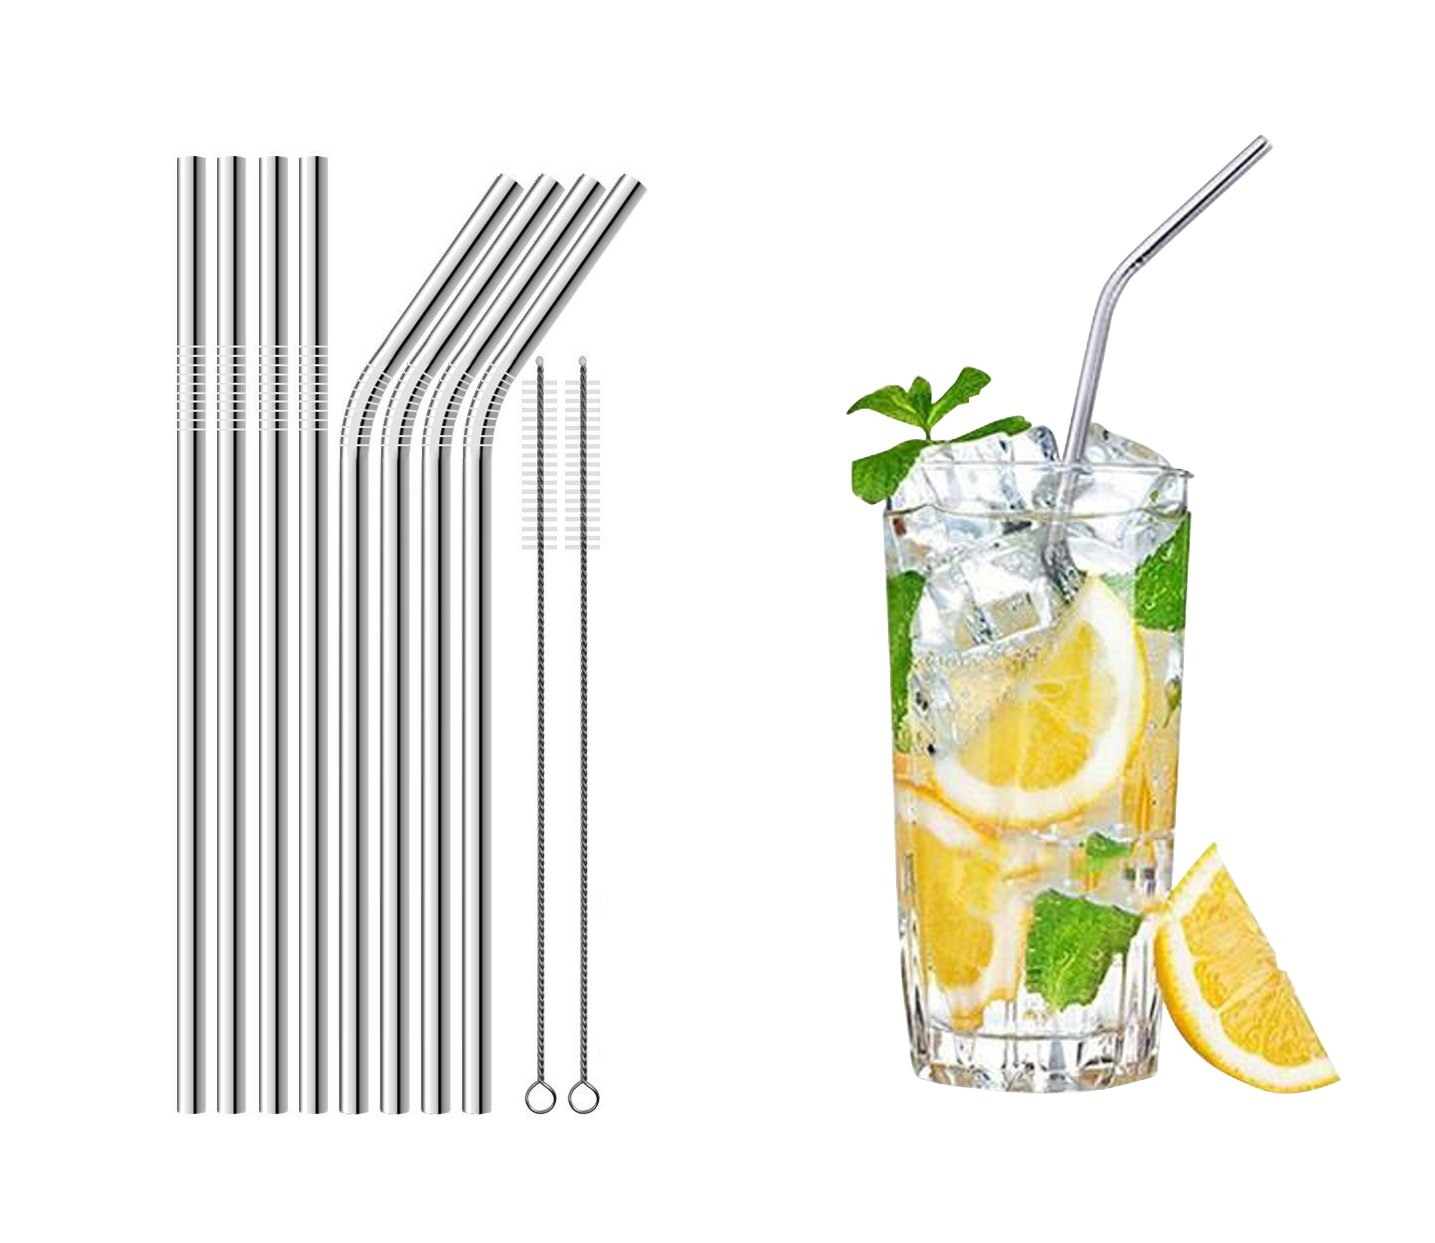 Reusable Metal Straws Set of 8 Stainless Steel Straw Ultra Long 8.5 Inch For Tumblers Cold Beverage (4 Straight|4 Bent|2 Brushes)